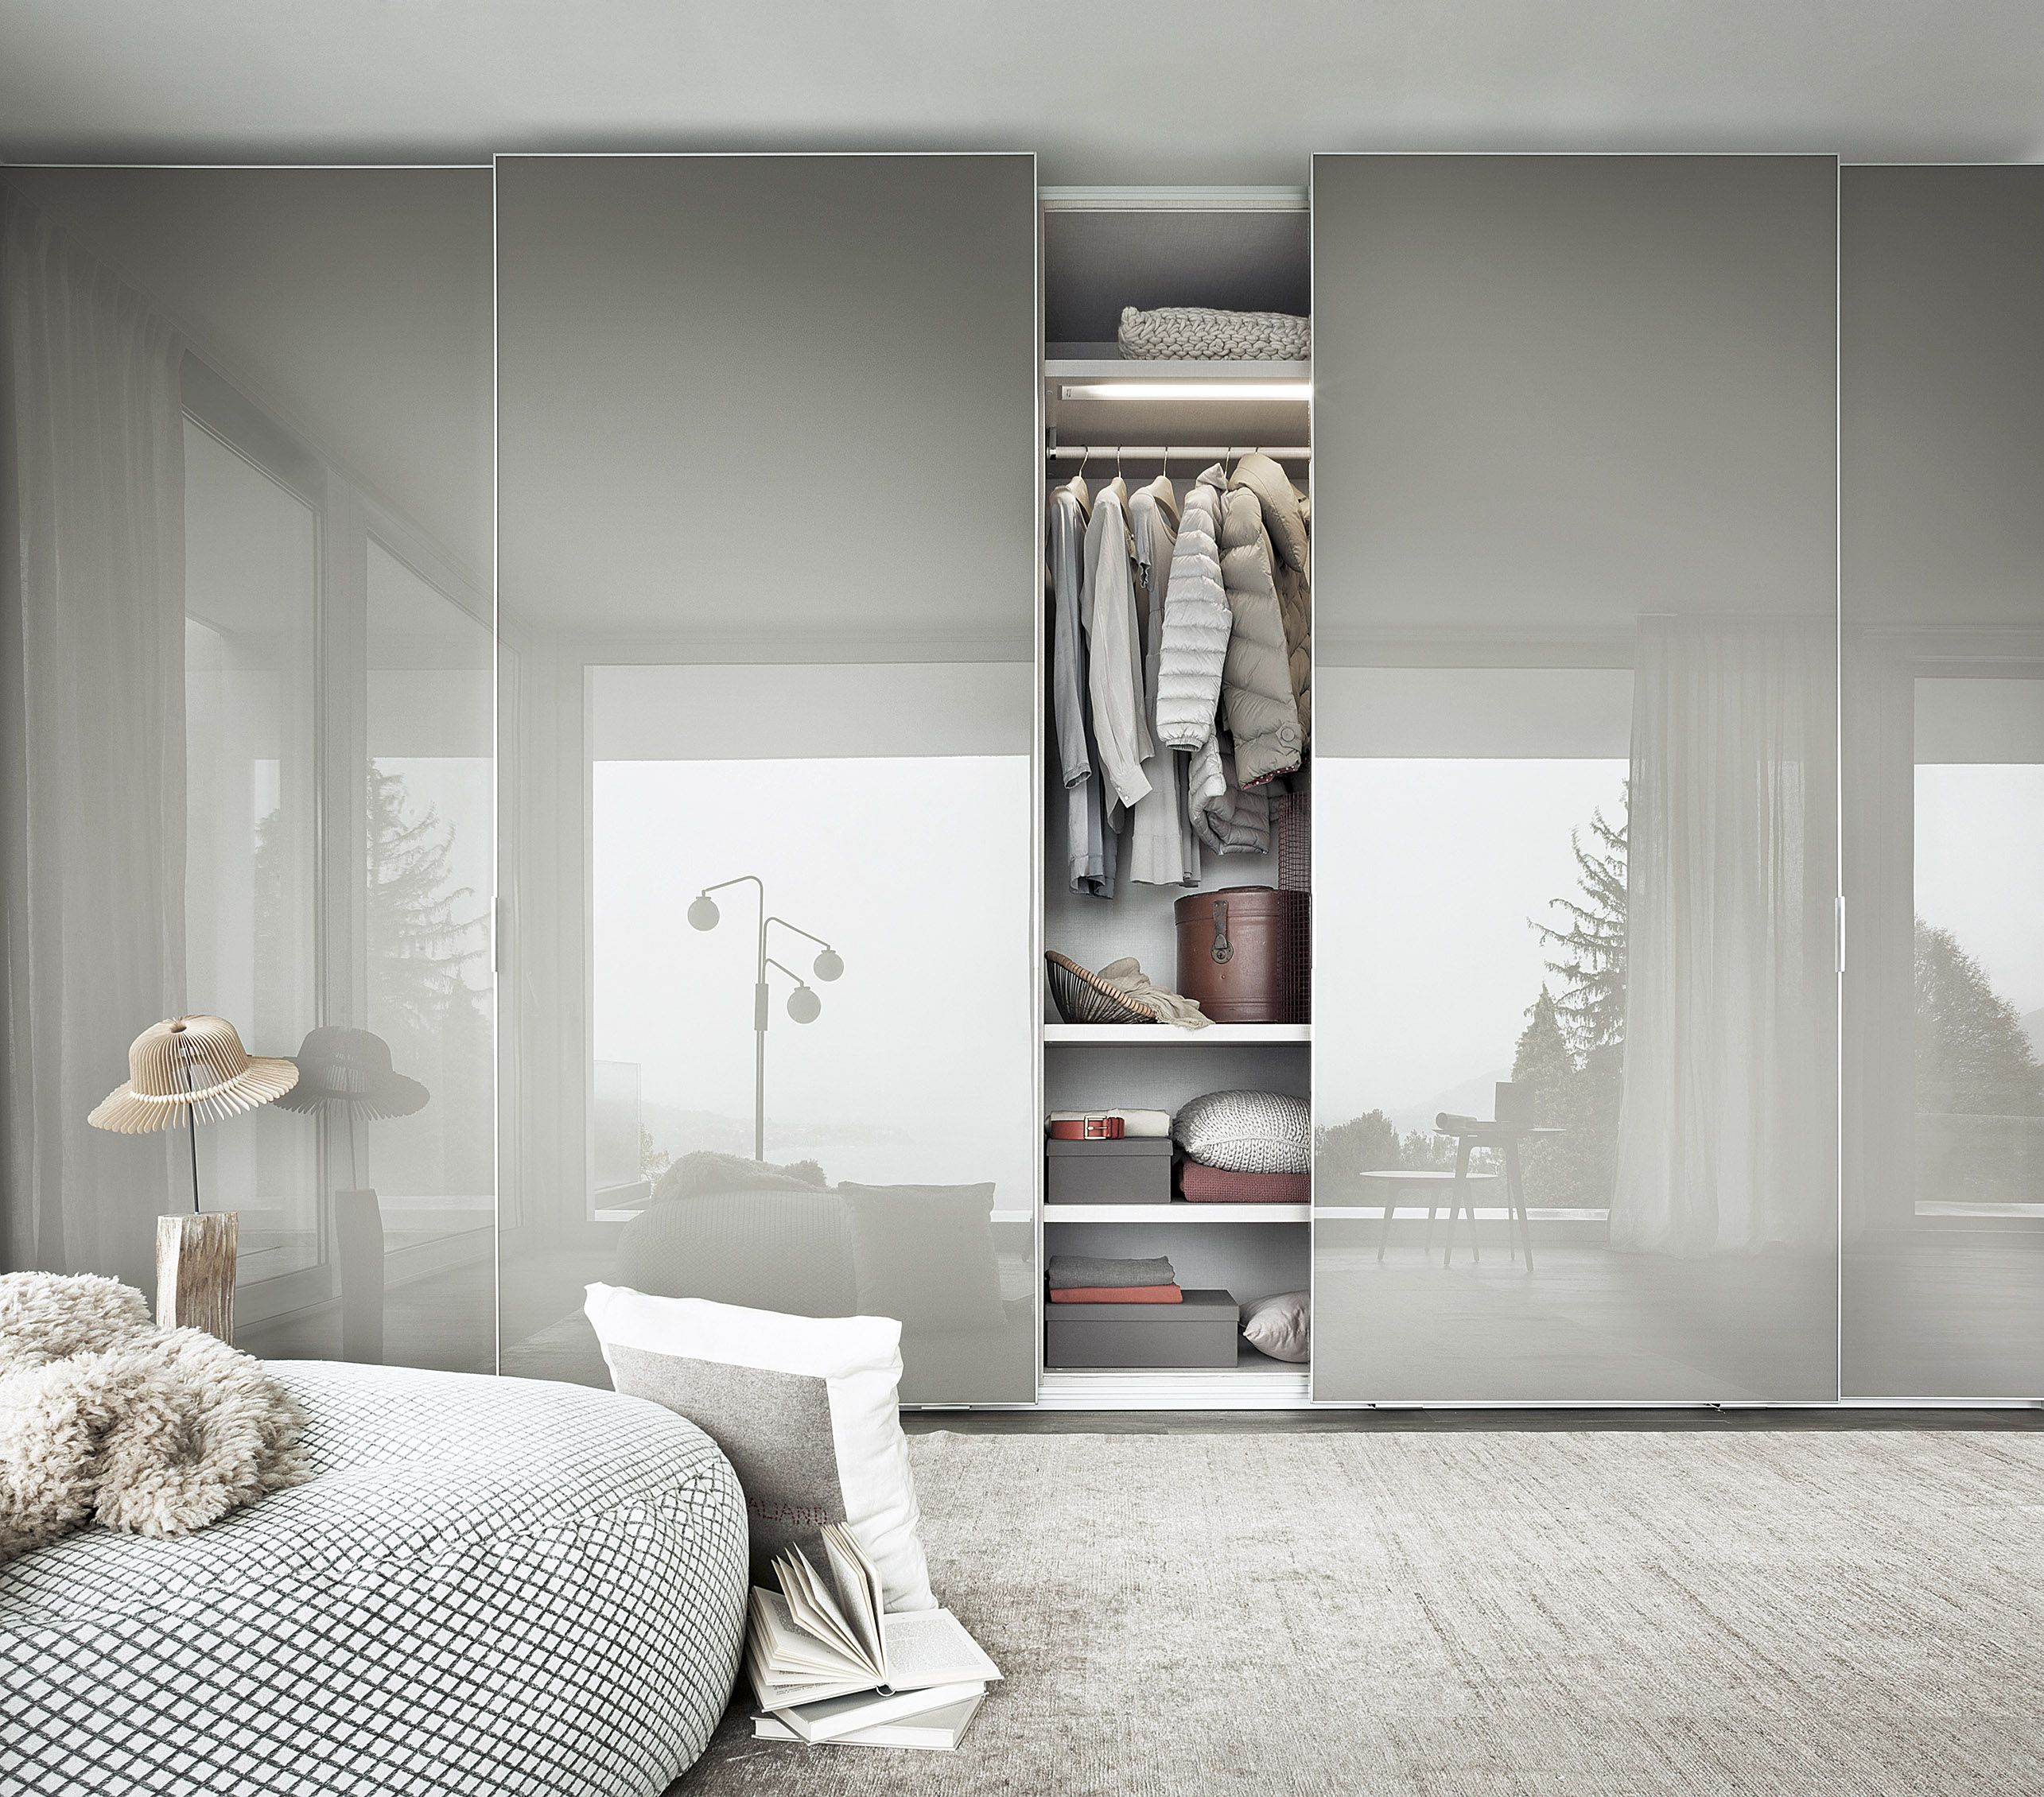 Sliding Door Wardrobe From Italian Design Brand Lema High Gloss Finish Which Gives It A Bedroom Closet Doors Bedroom Closet Design Wardrobe Design Bedroom